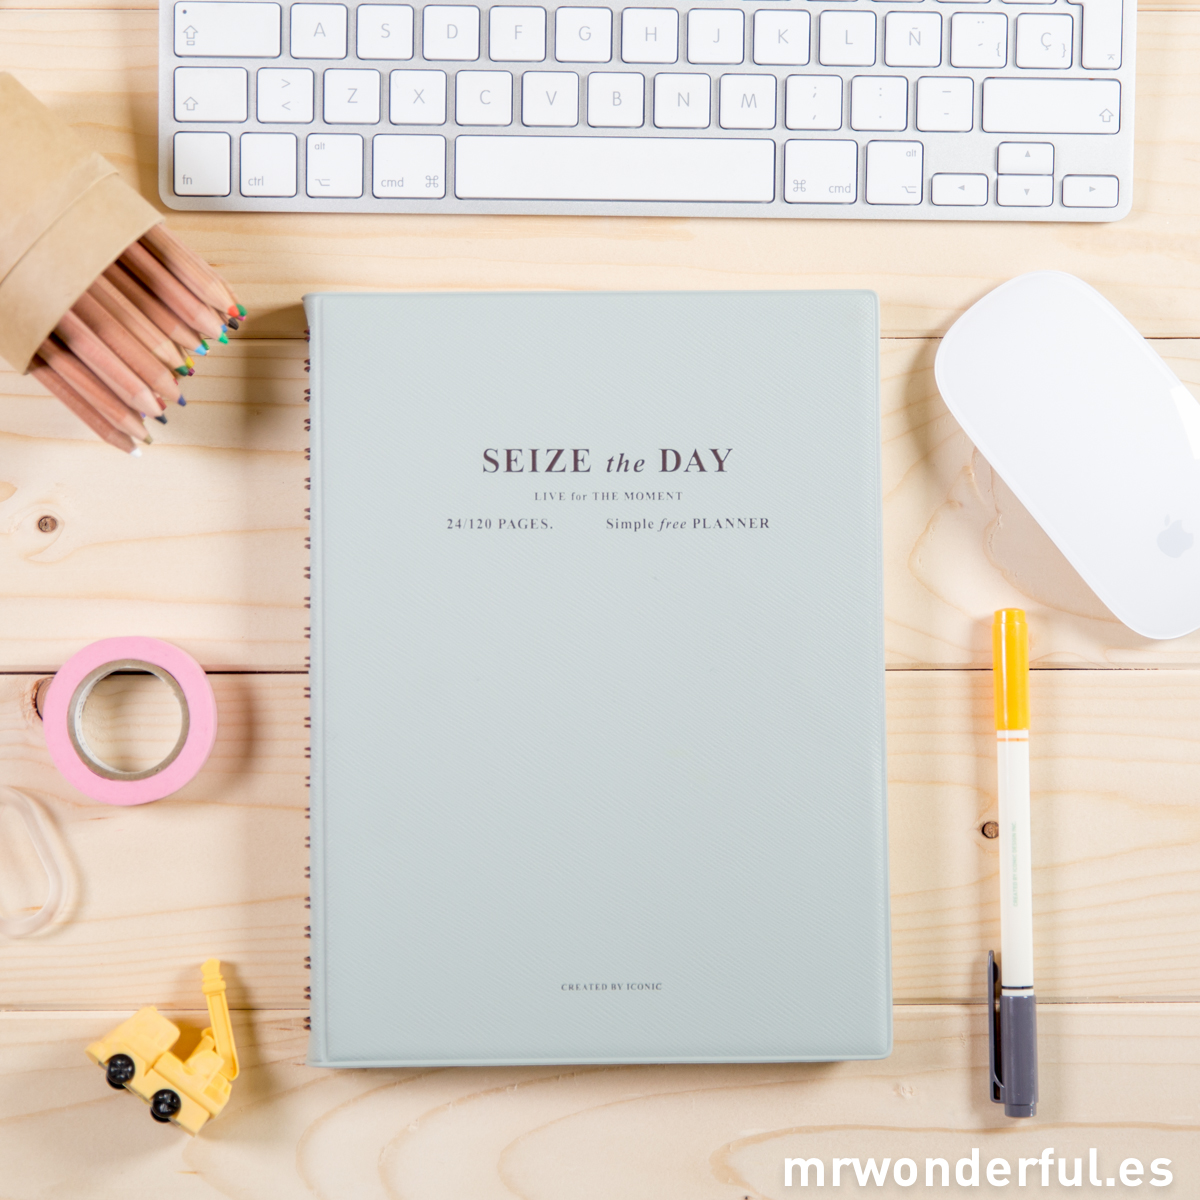 mrwonderful_ICONIC0066A_allbum-planificador-Seize-the-day-mint-7